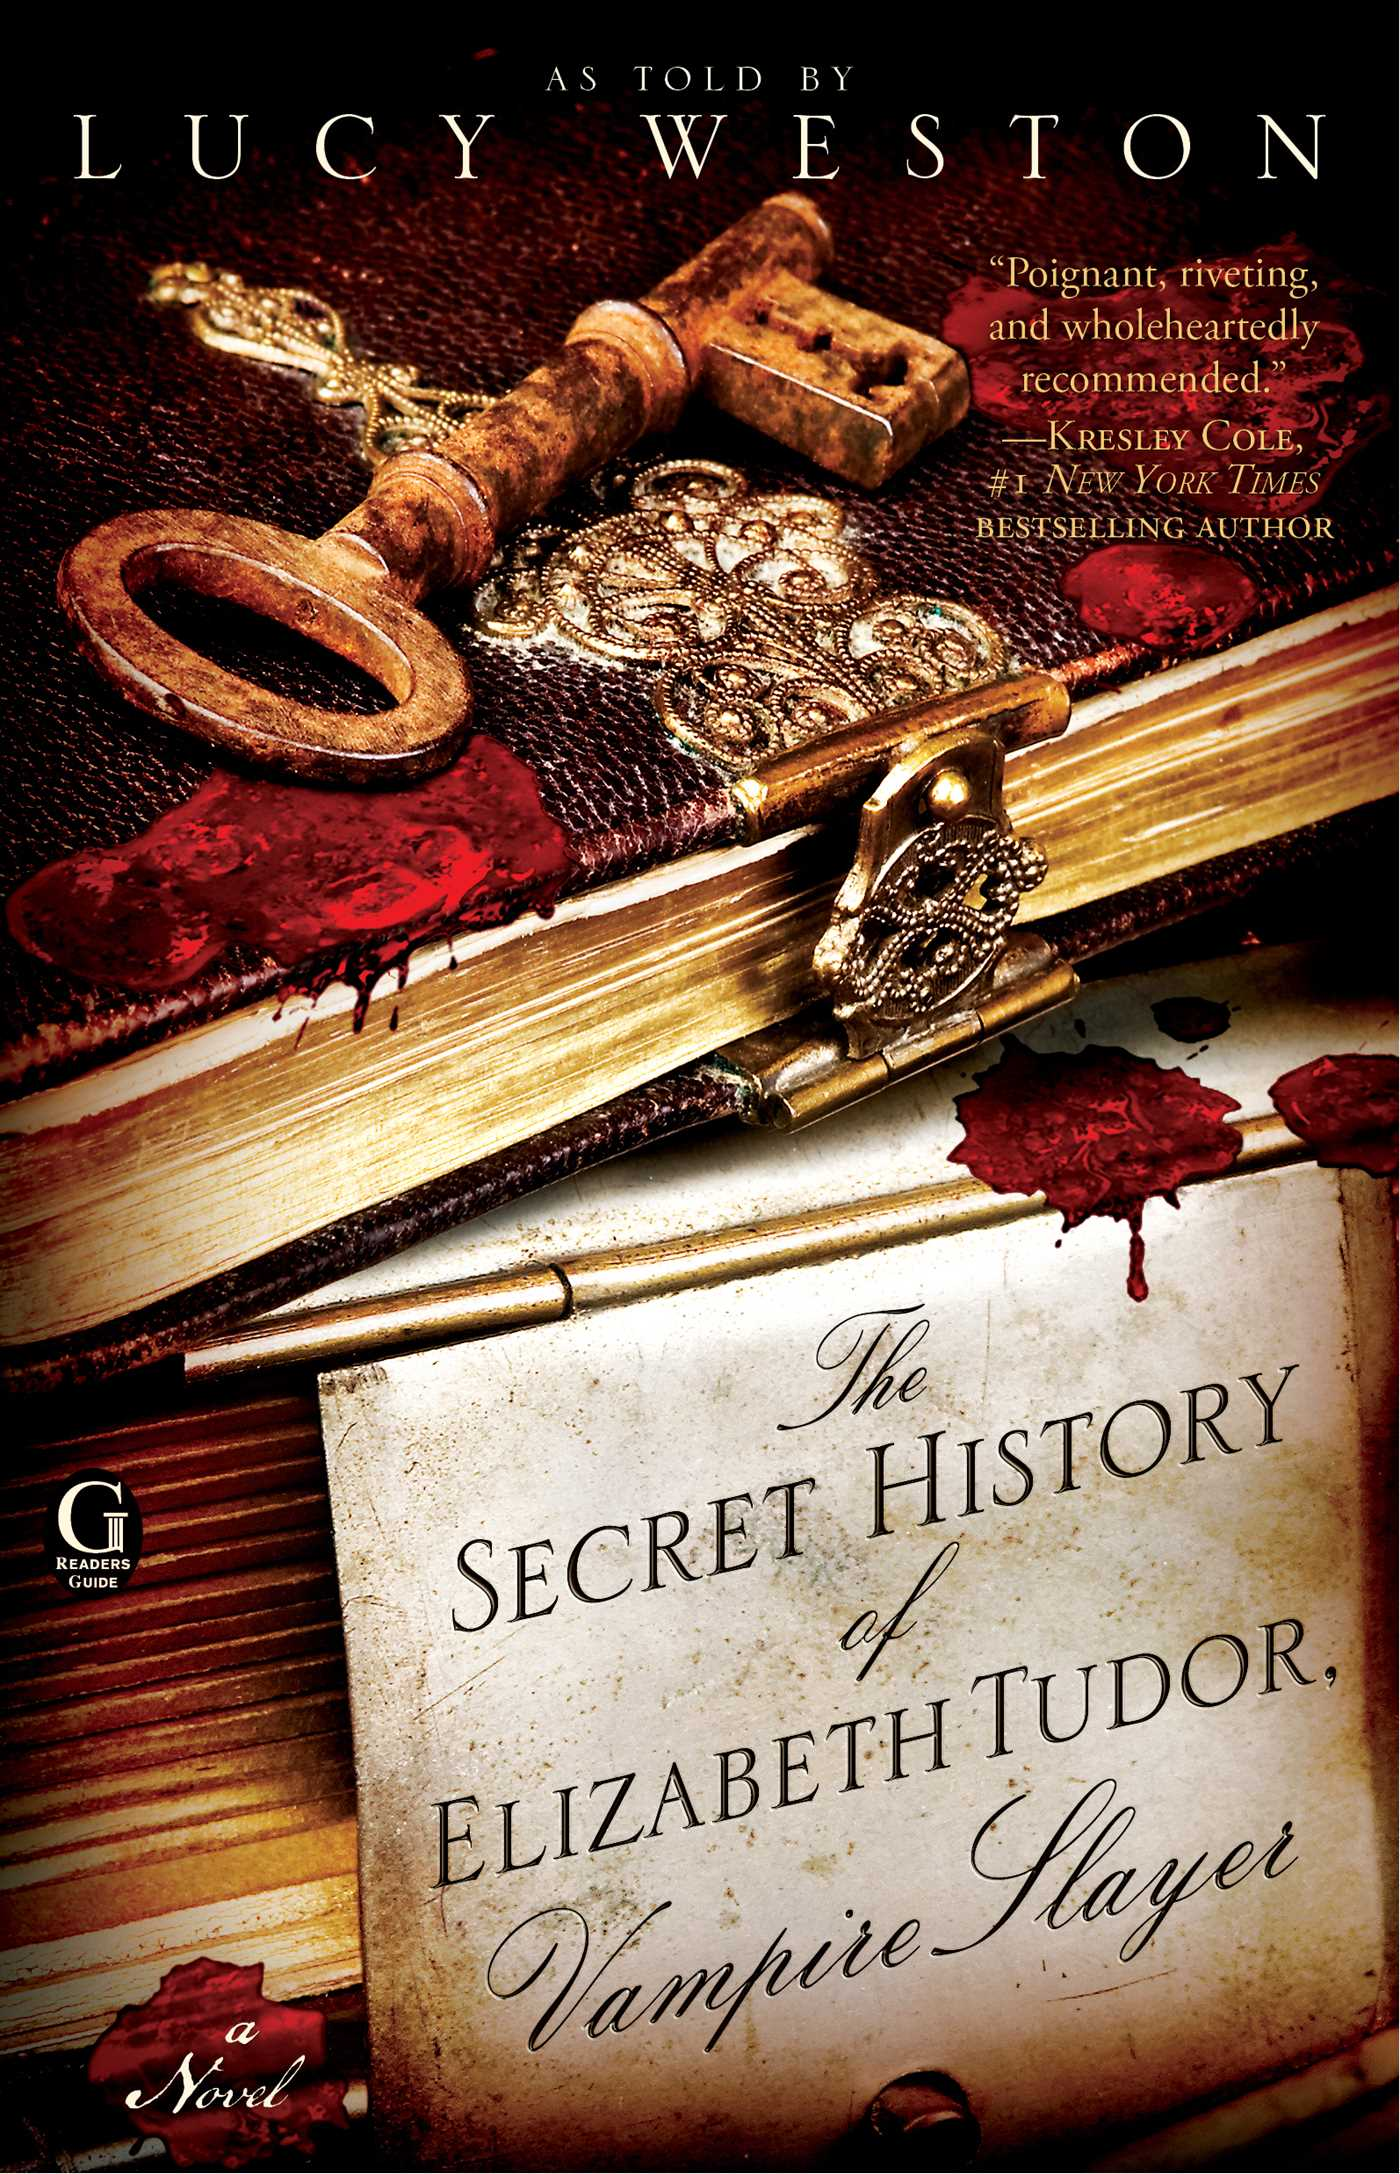 The secret history of elizabeth tudor vampire slayer 9781439190395 hr